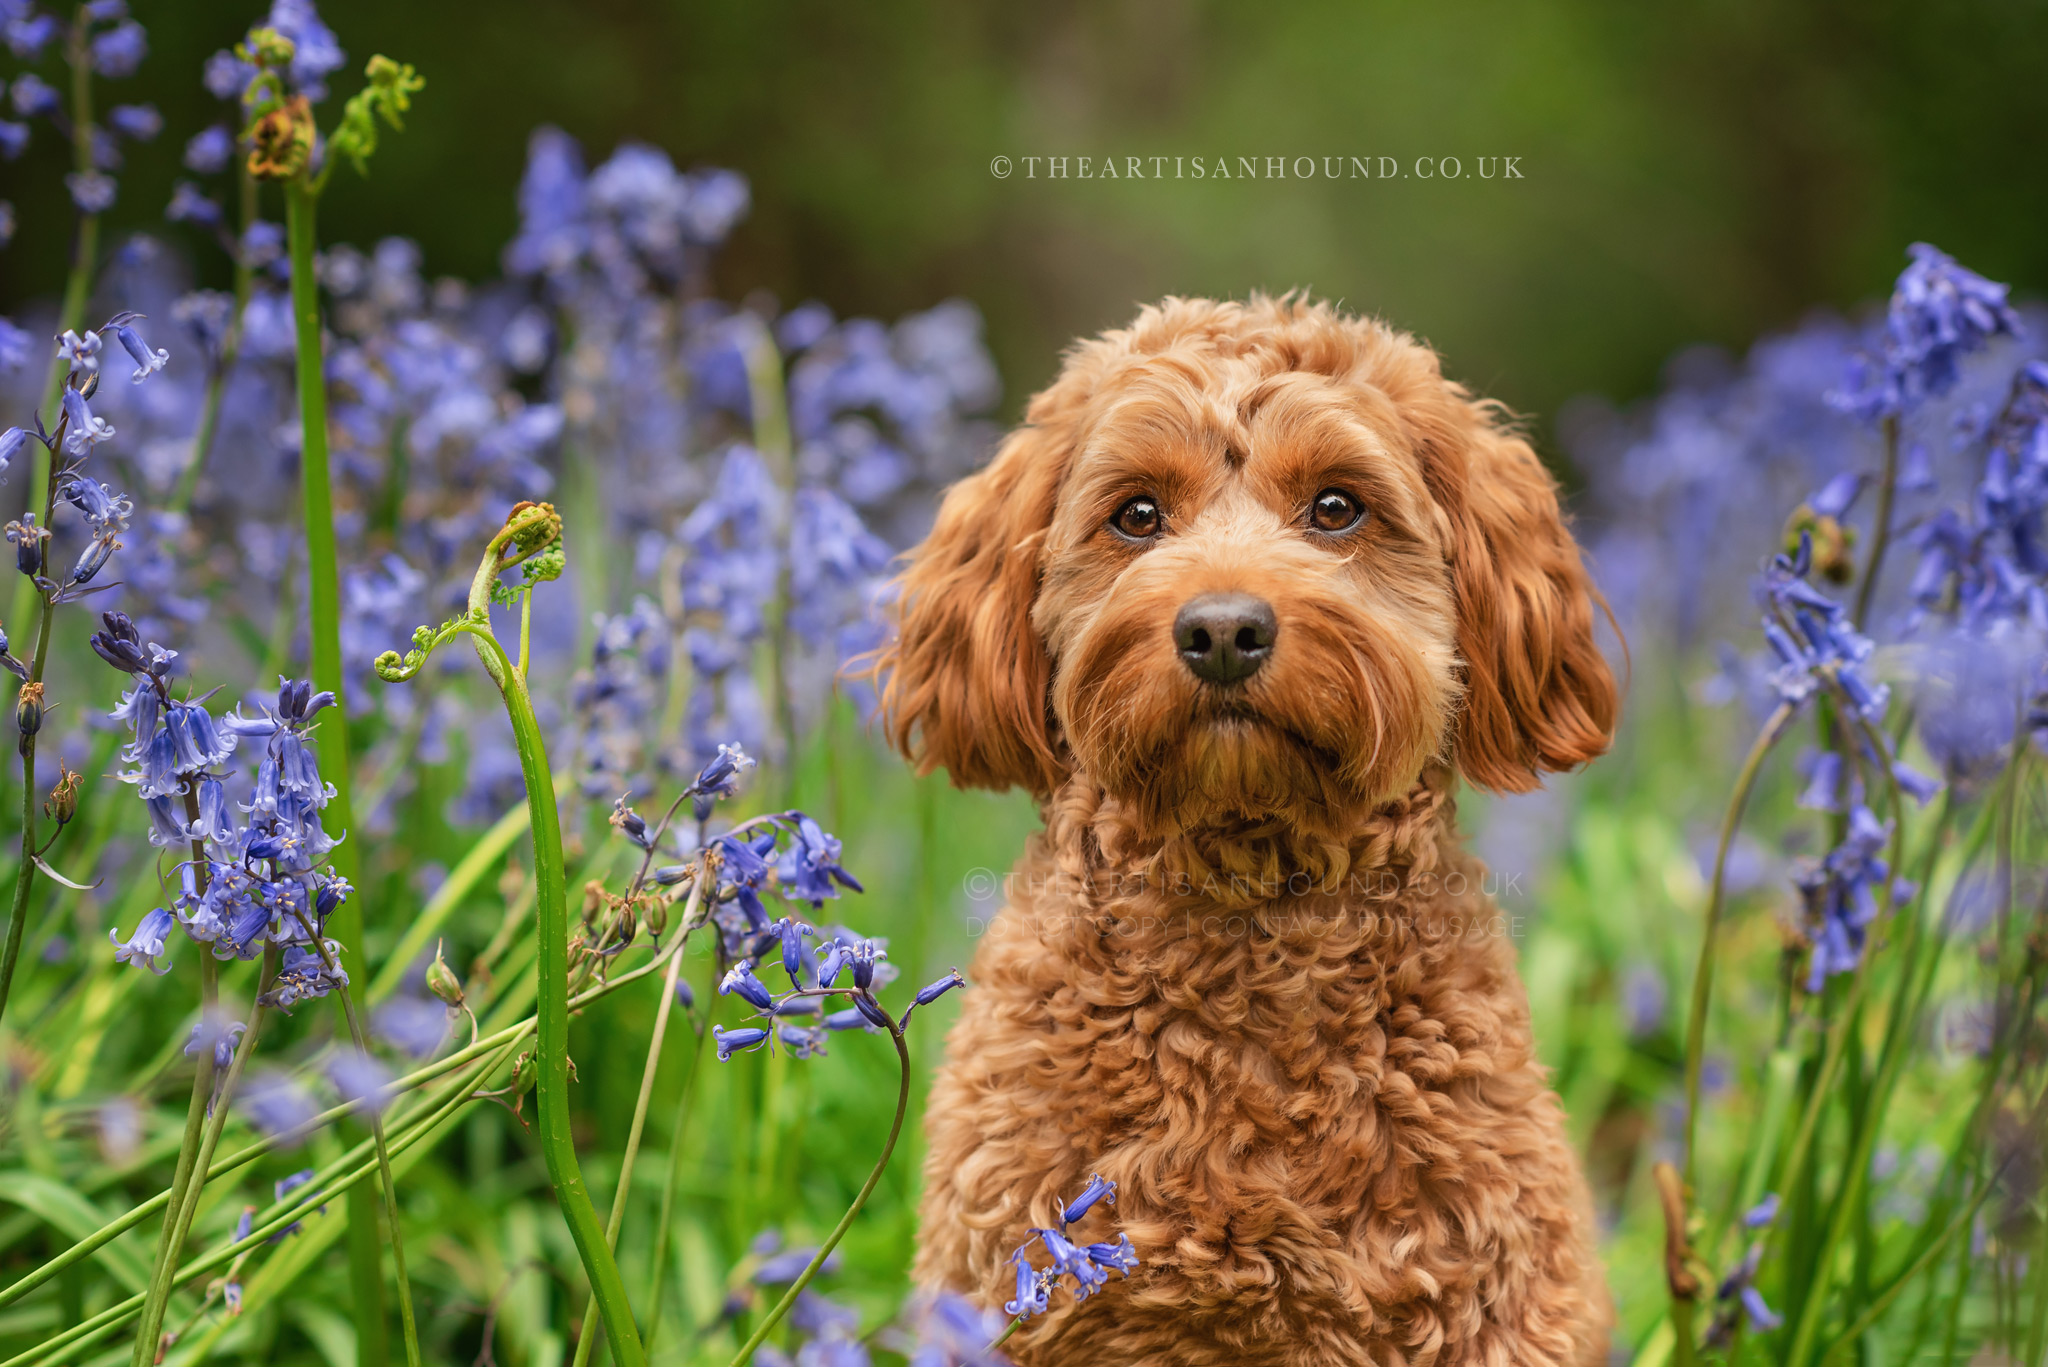 cockerpoo-portrait-photo-in-bluebells